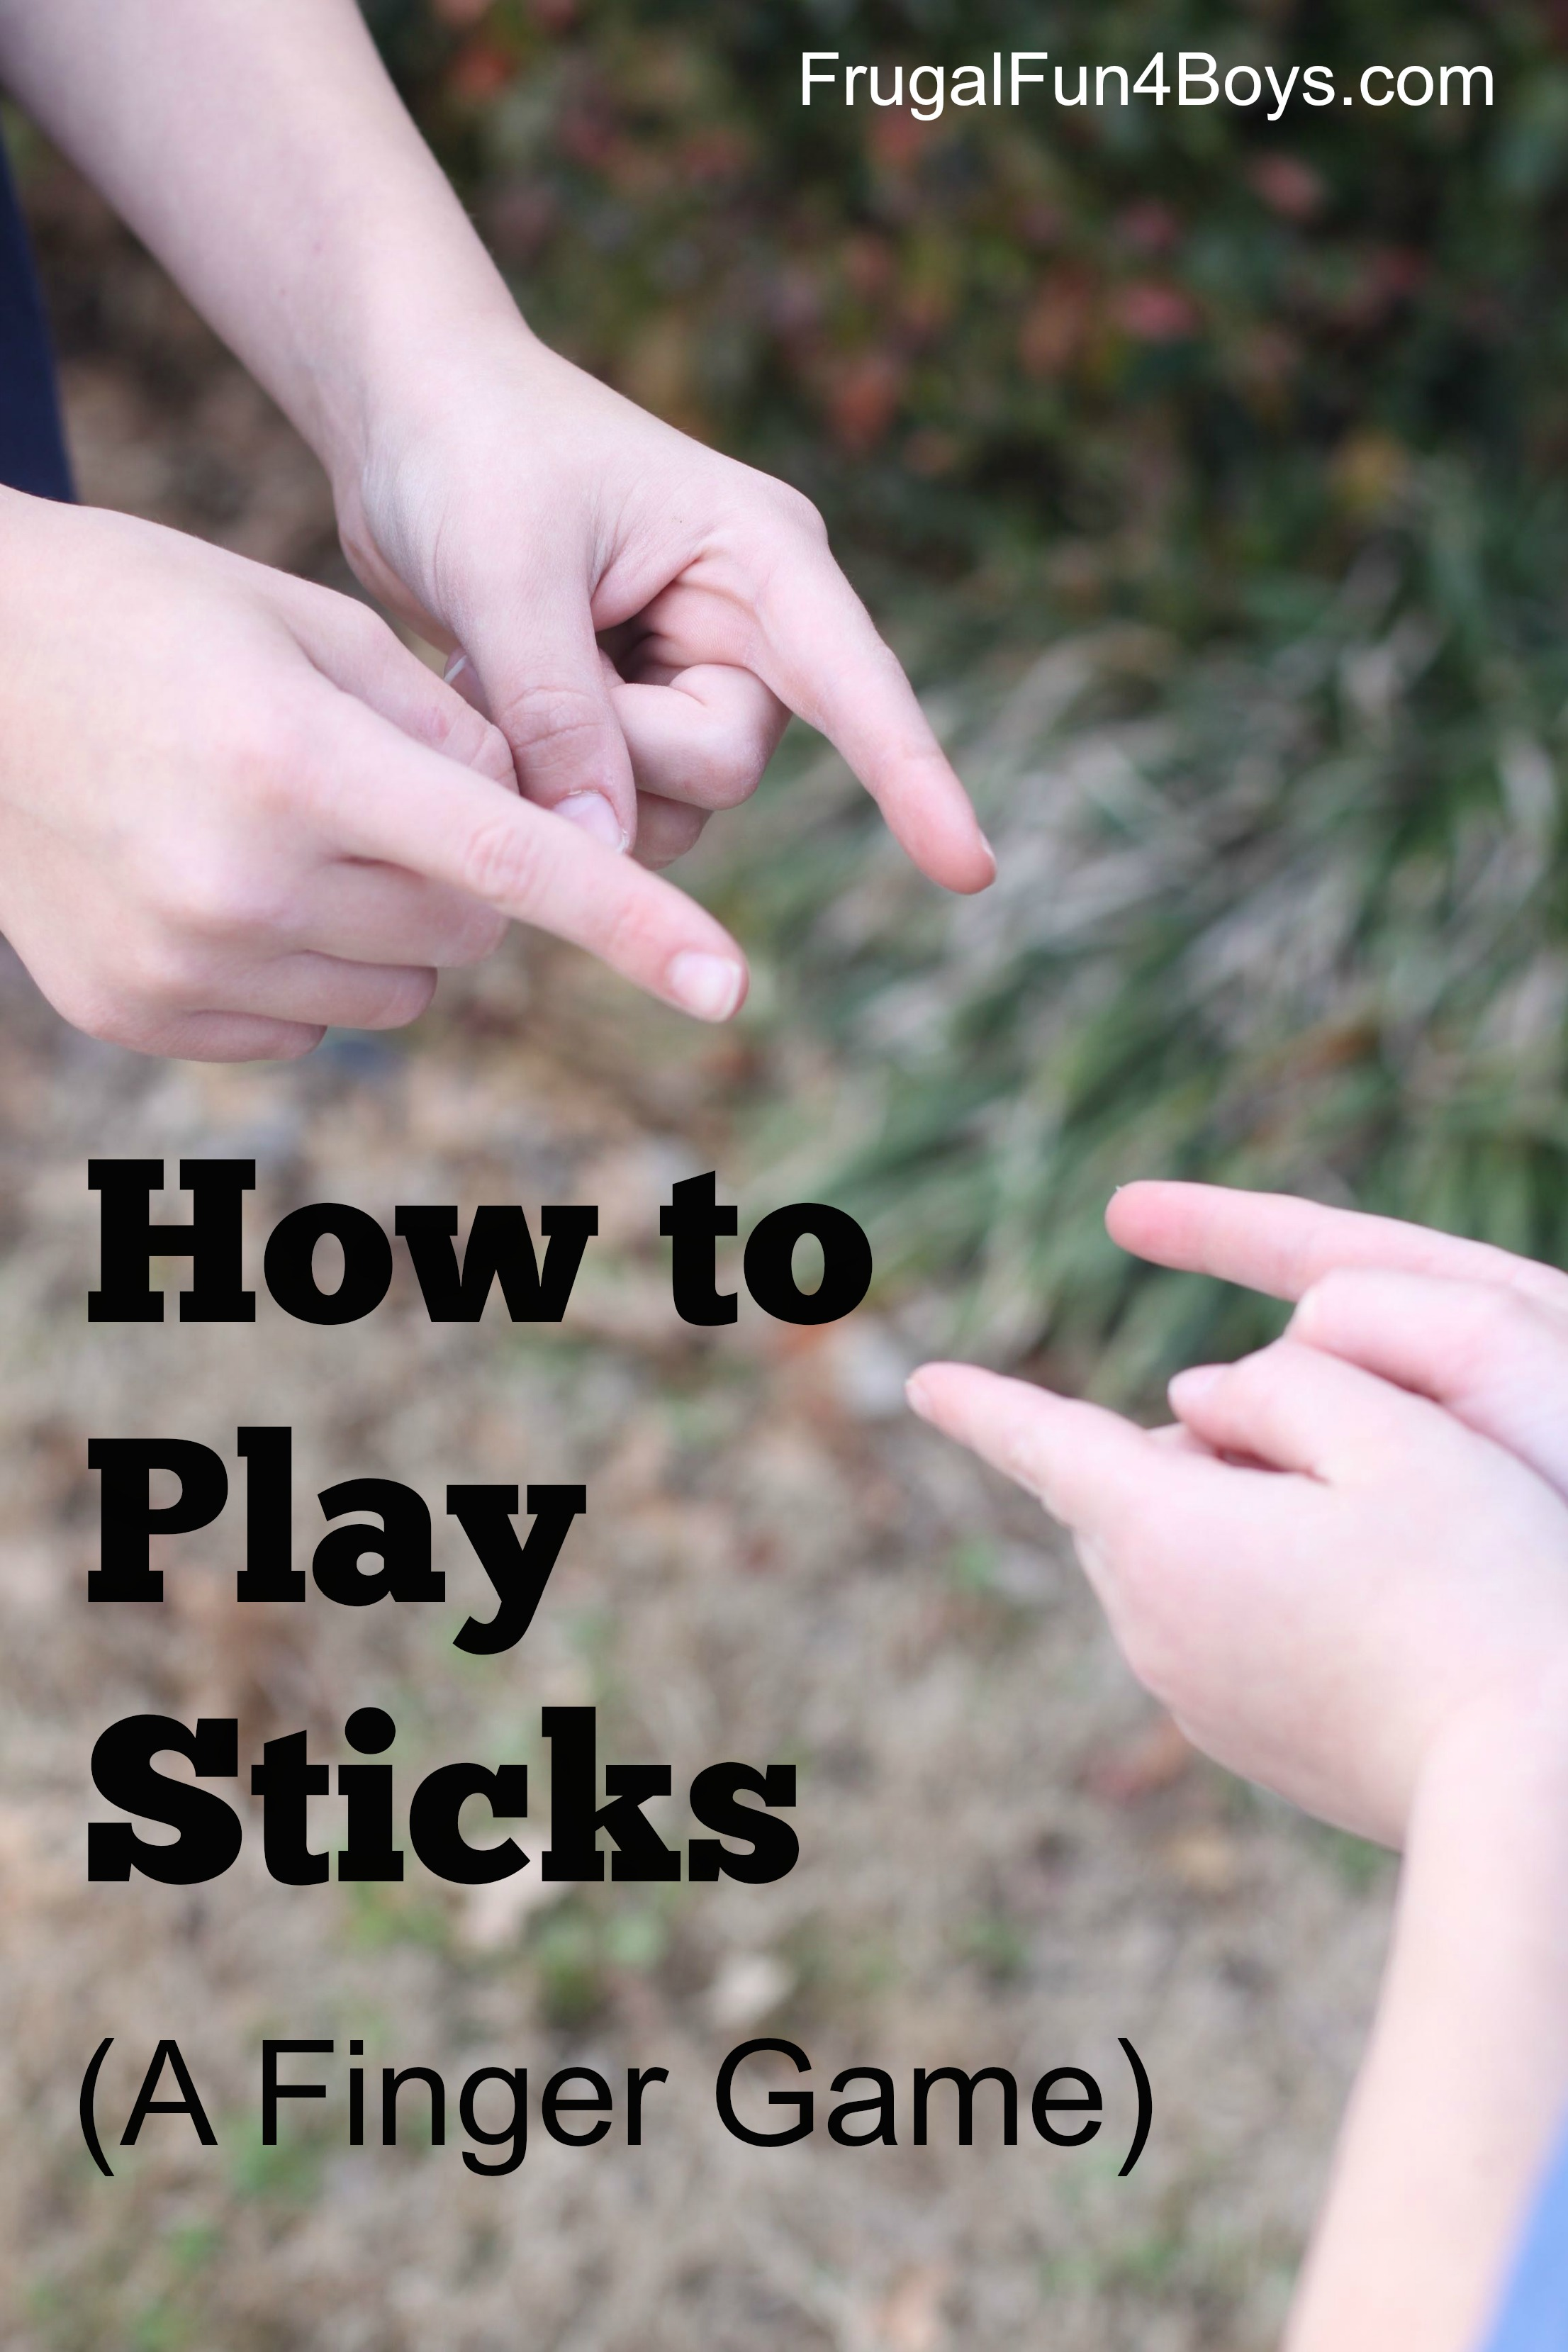 How to Play Sticks